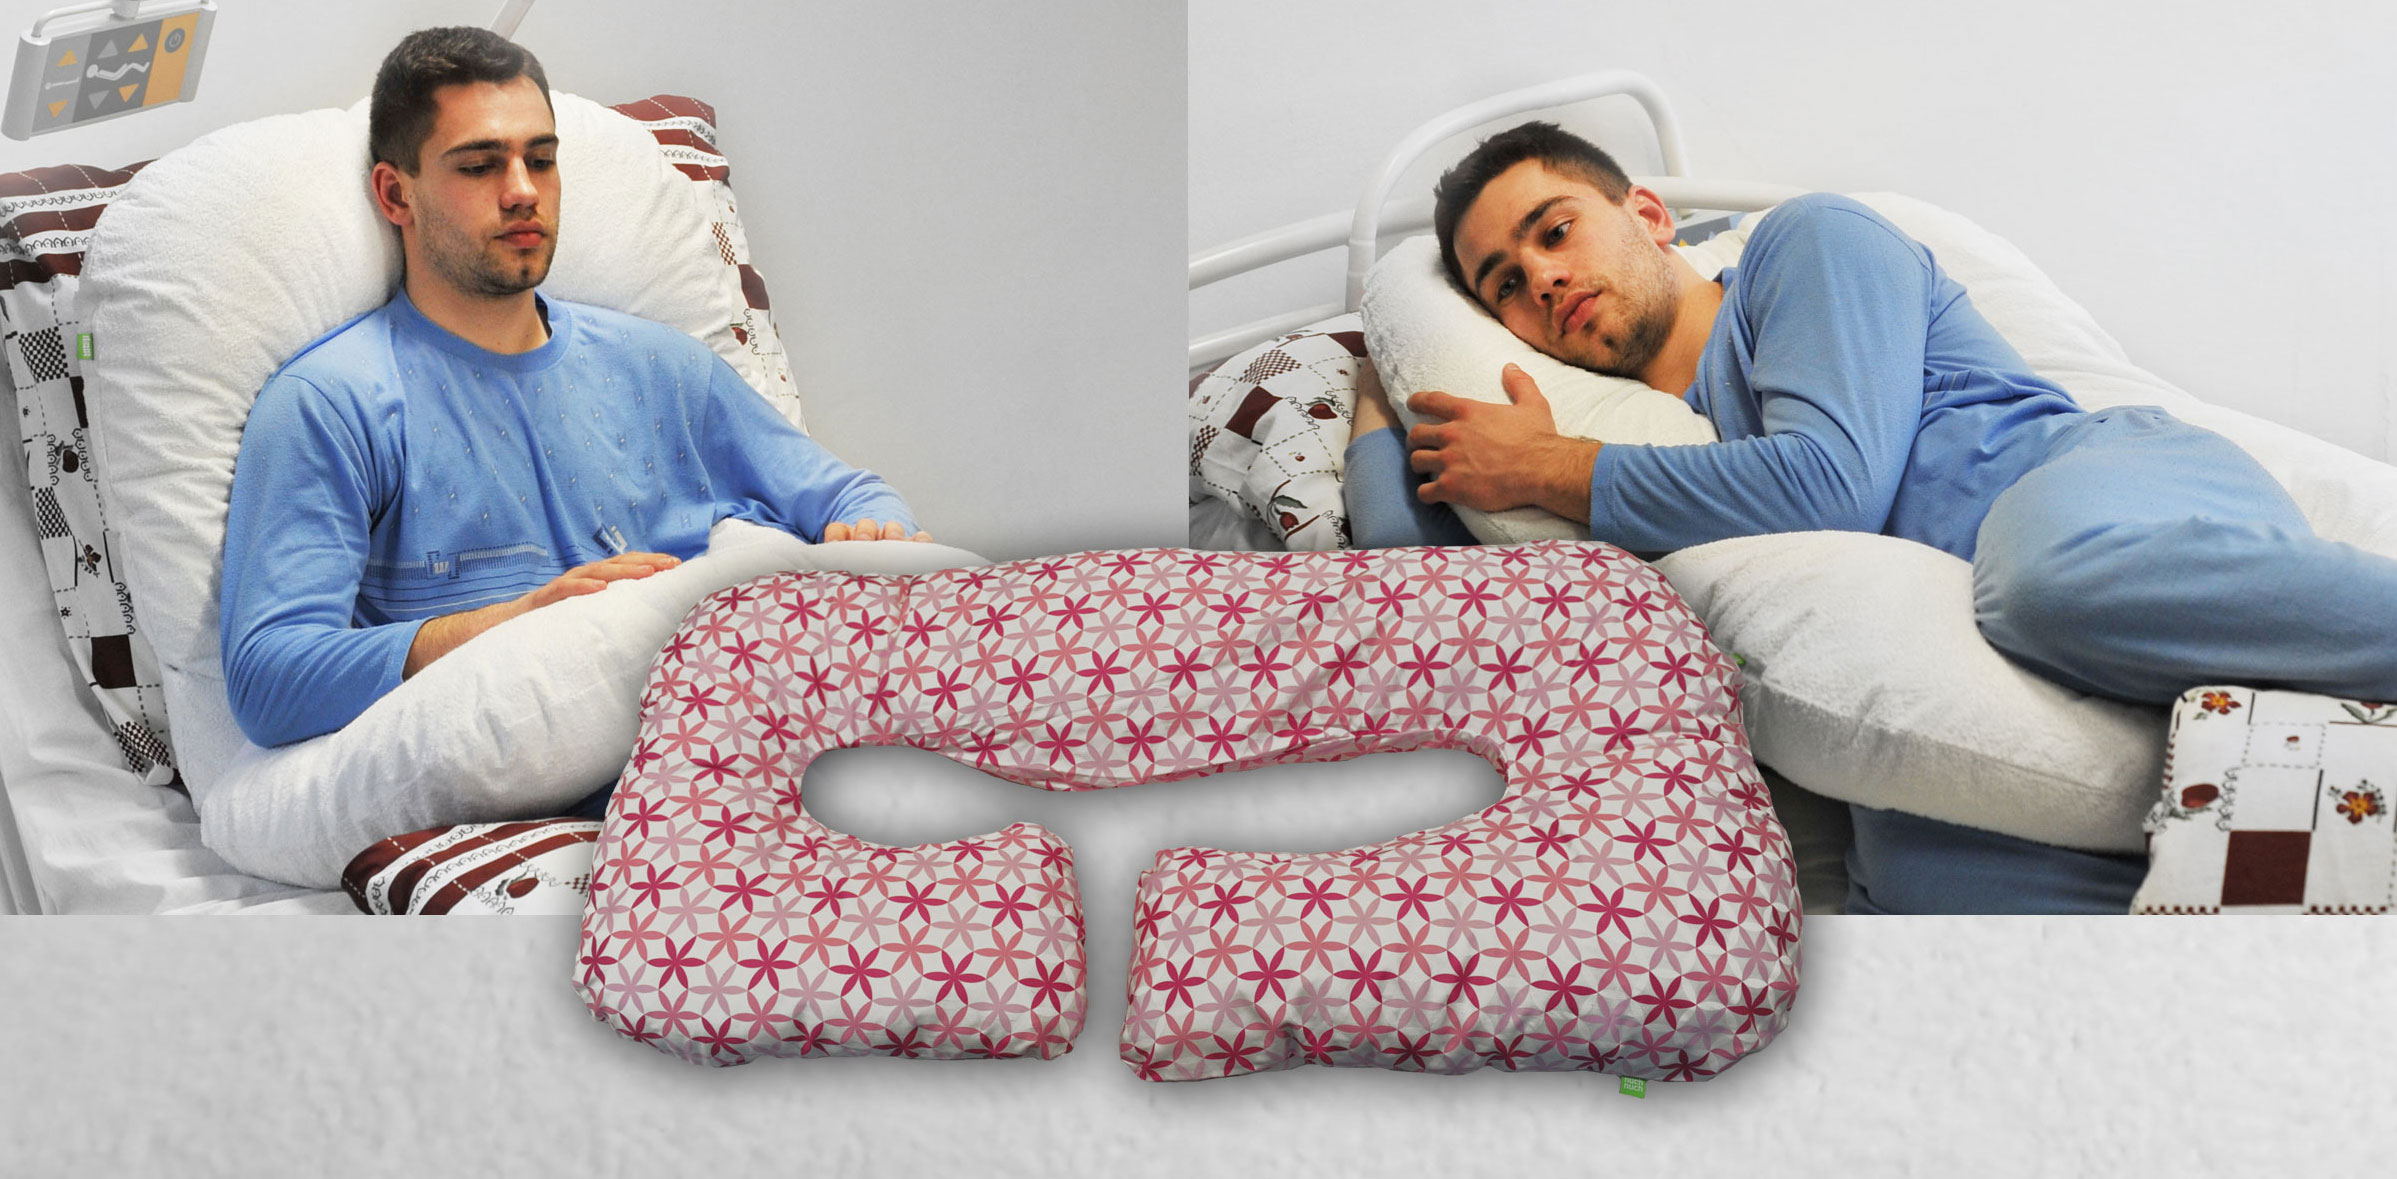 Snug Positioning Pillows for Comfort